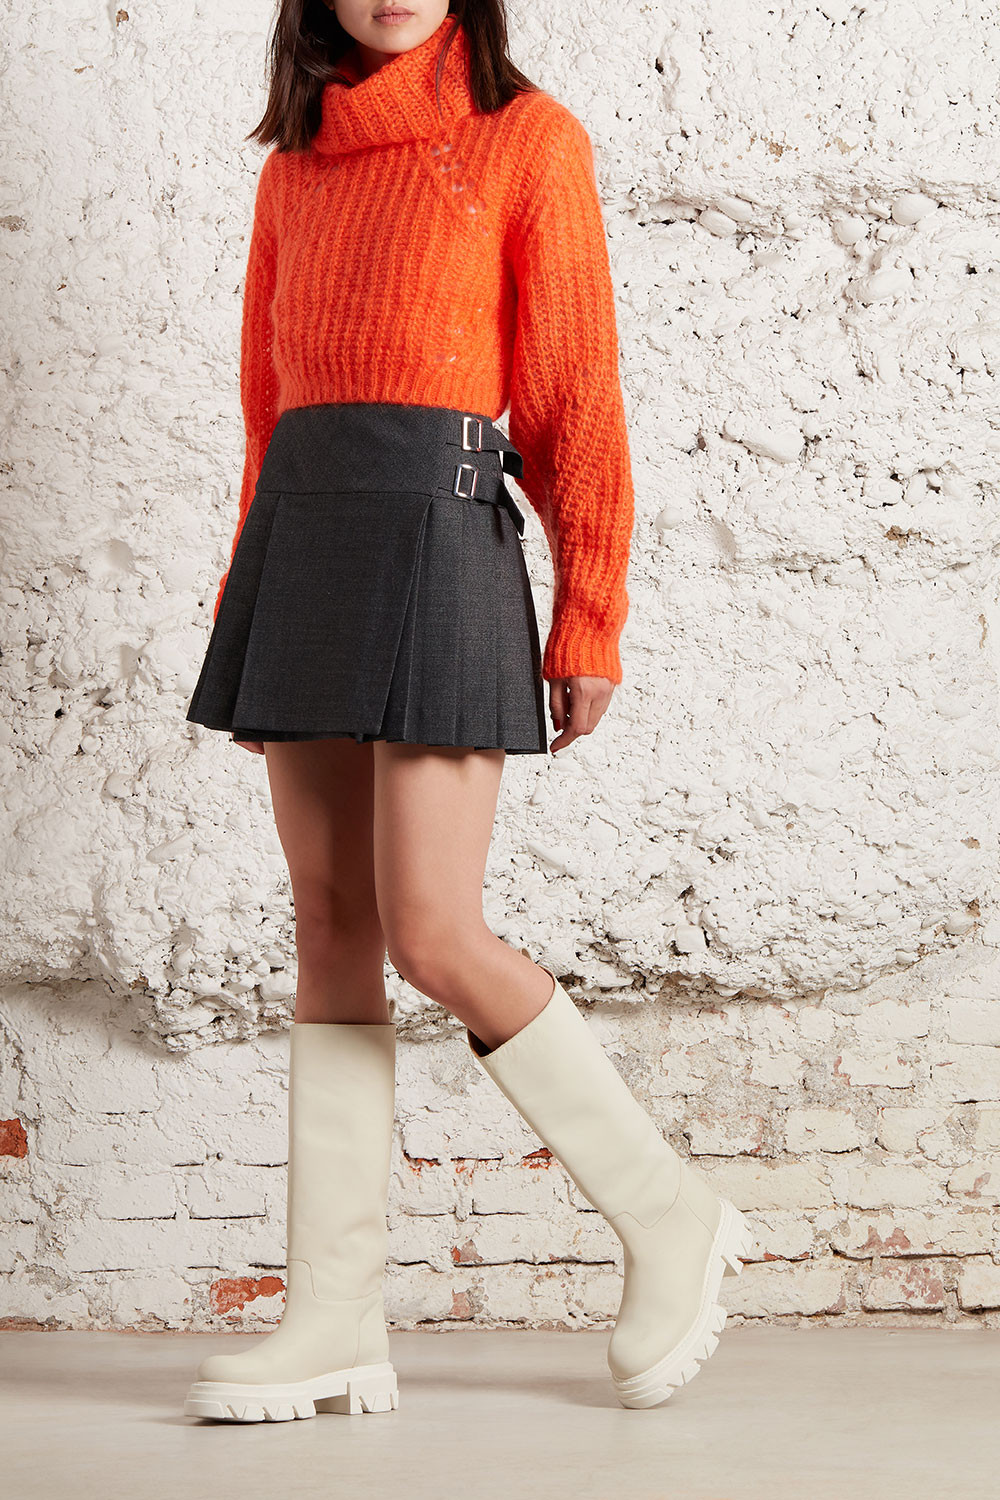 MINI SKIRT WITH BUCKLE - PLANED620440